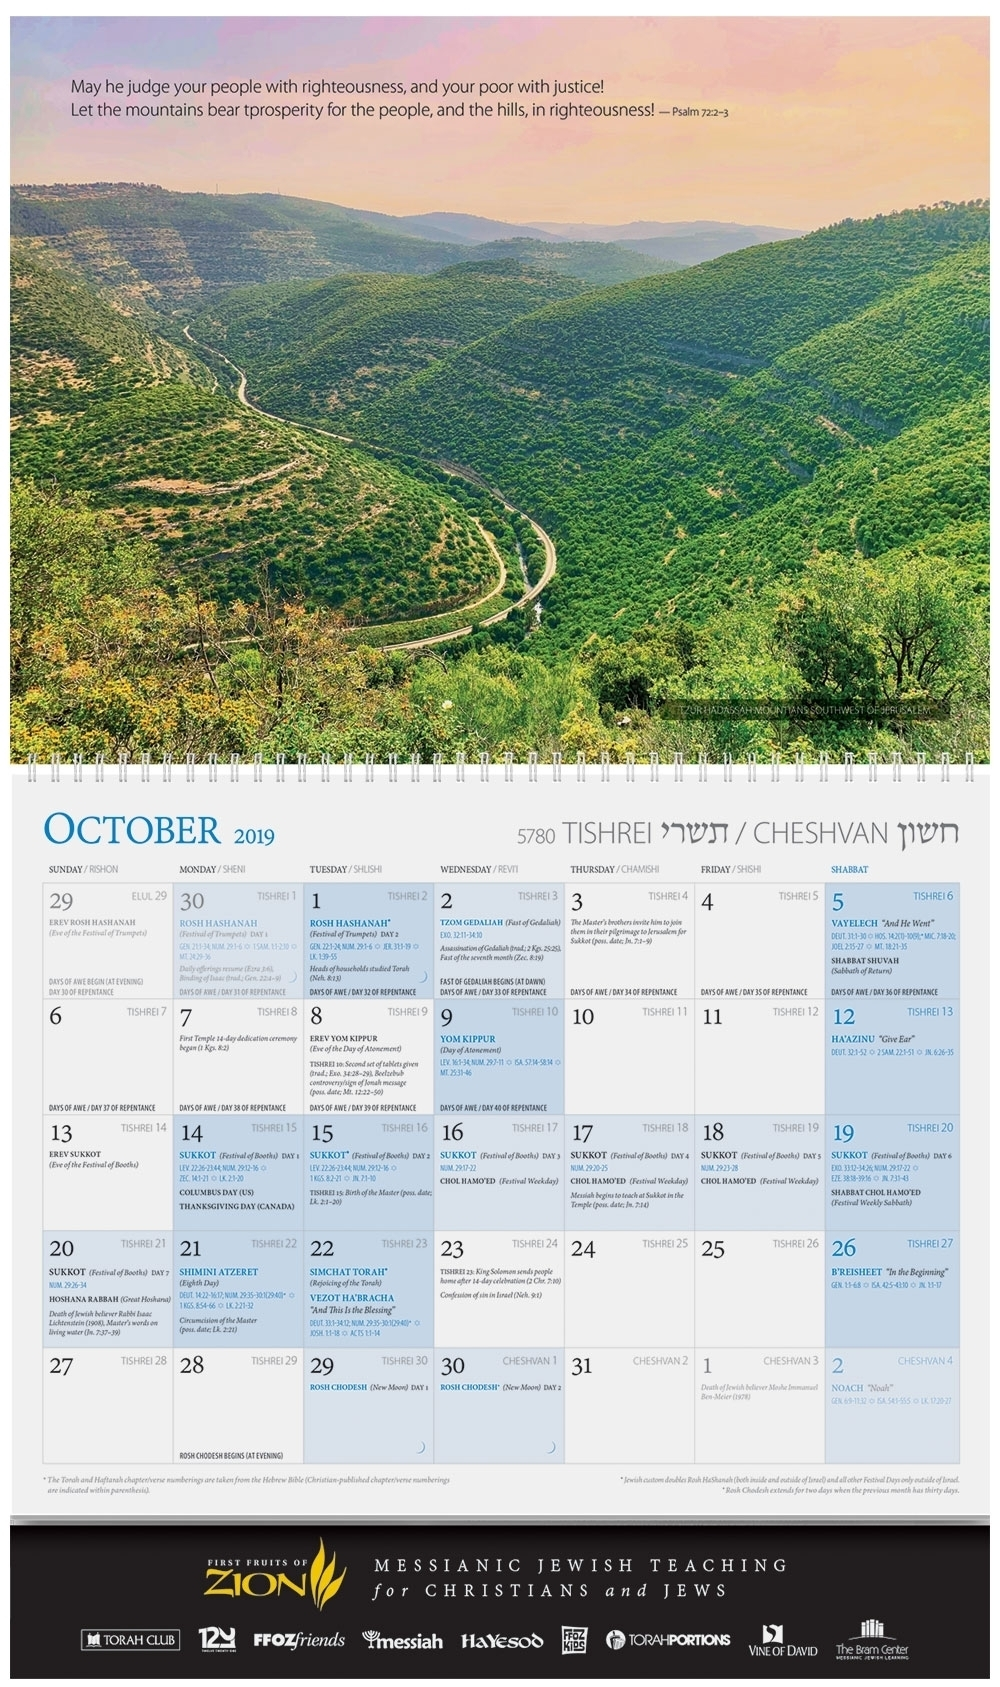 Weekly Torah Parsha Calendar For 2019/2020 - Calendar with regard to Wanting To Print 2019 And 2020 Weekly Torah Portions